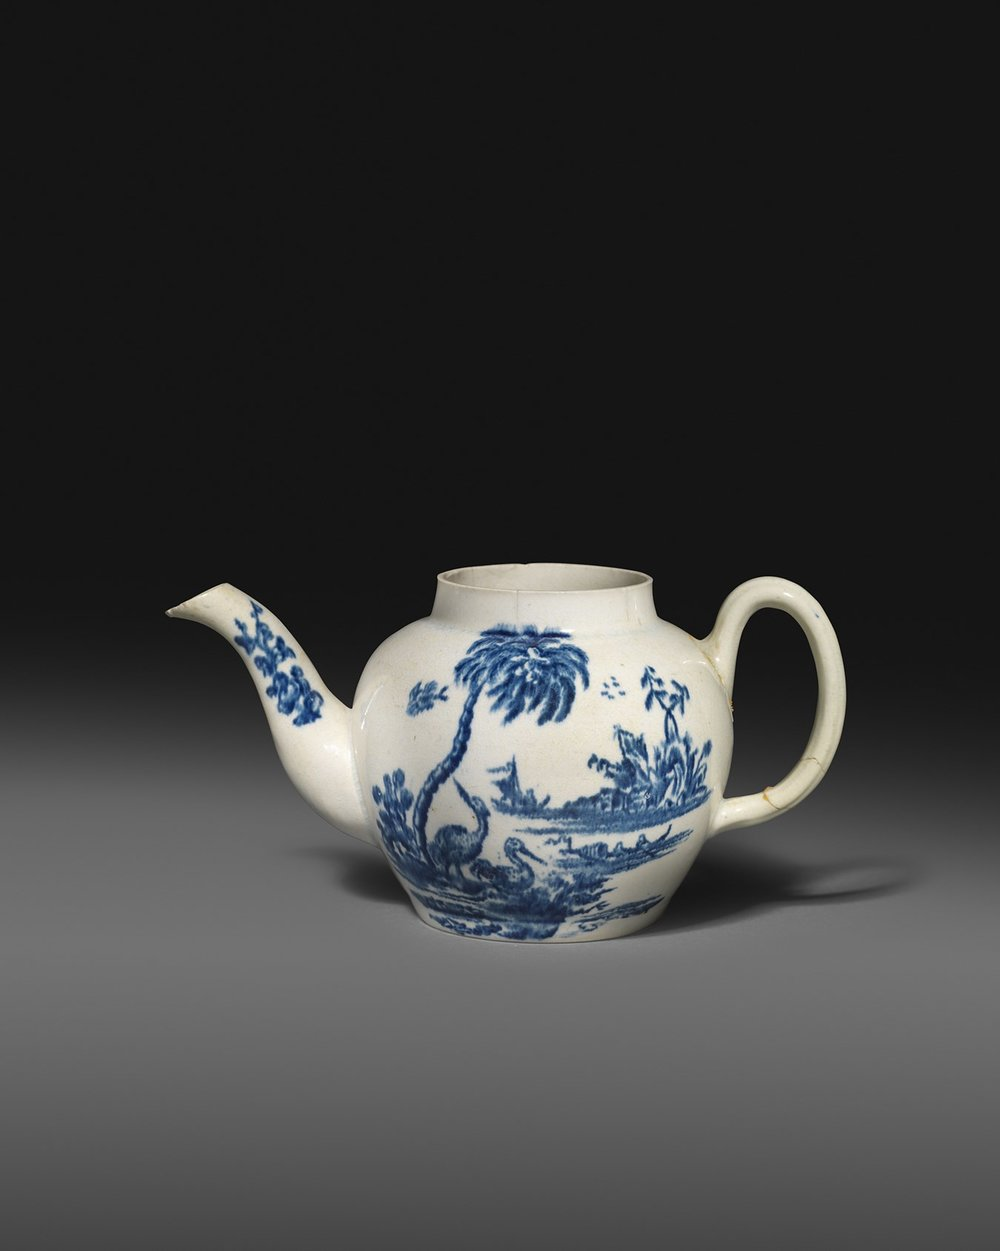 An important and previously unrecorded American porcelain teapot attributed to John Bartlam (Cain Hoy, South Carolina), c.1765-69. Estimate - £10,000 - £20,000. Starting price £10,000.